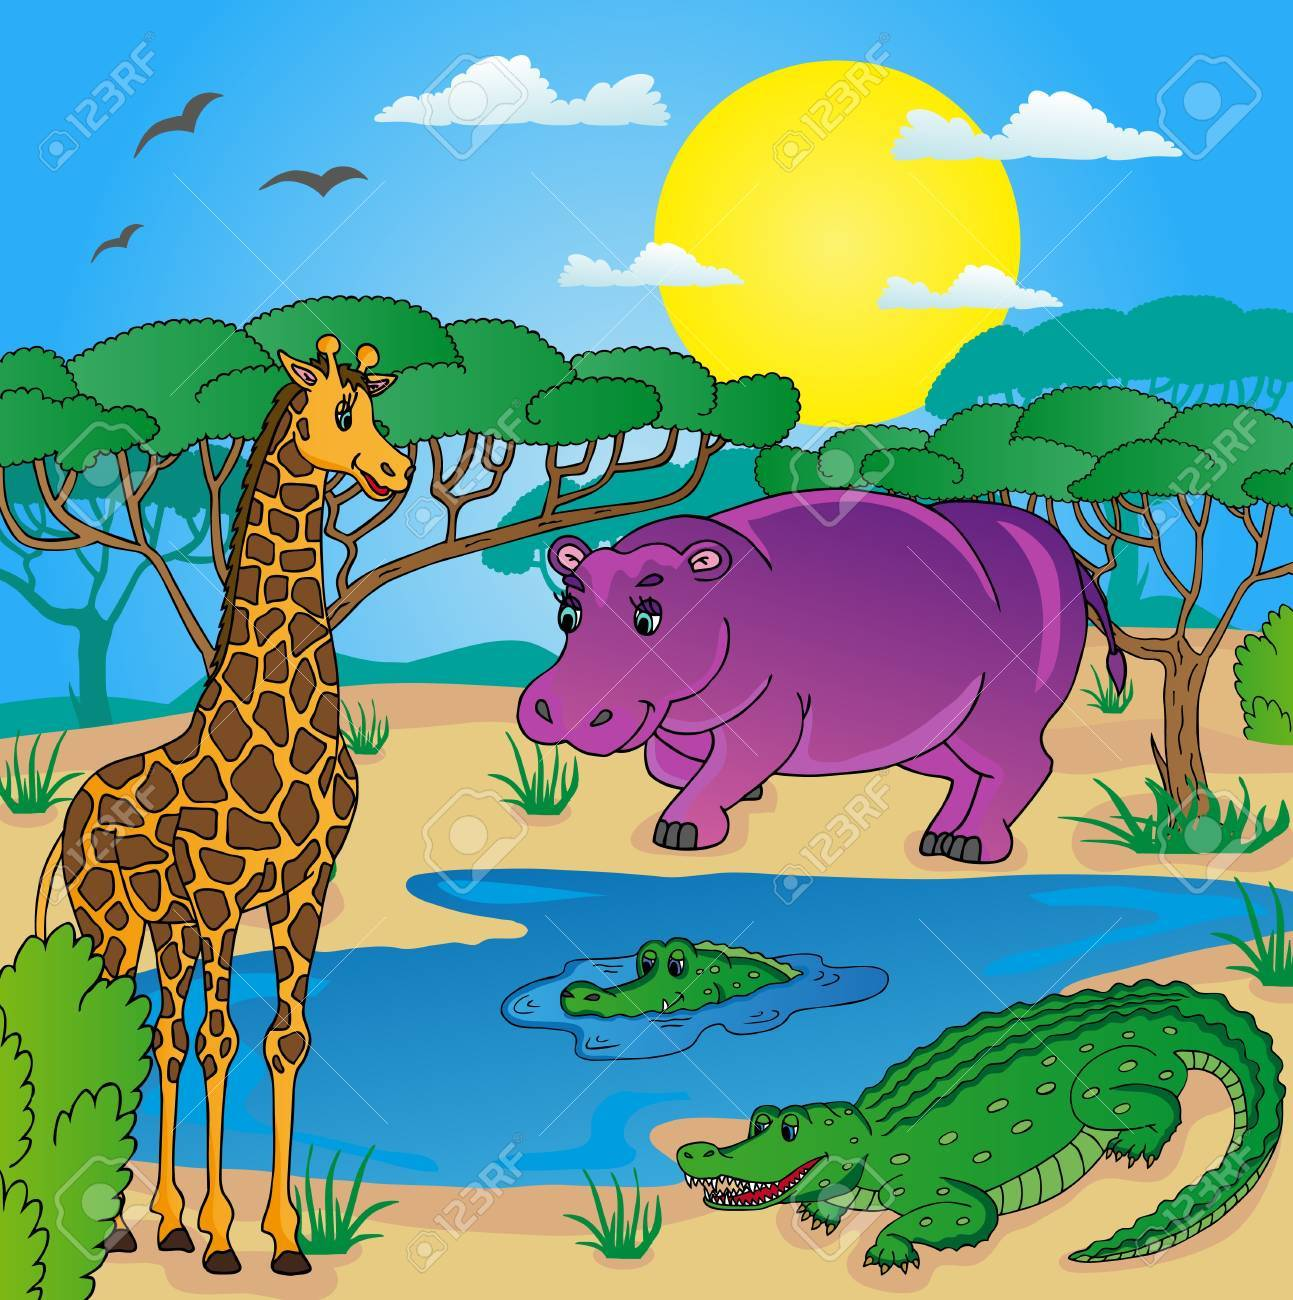 African landscape with animals 01 - vector illustration. Stock Vector - 21479256